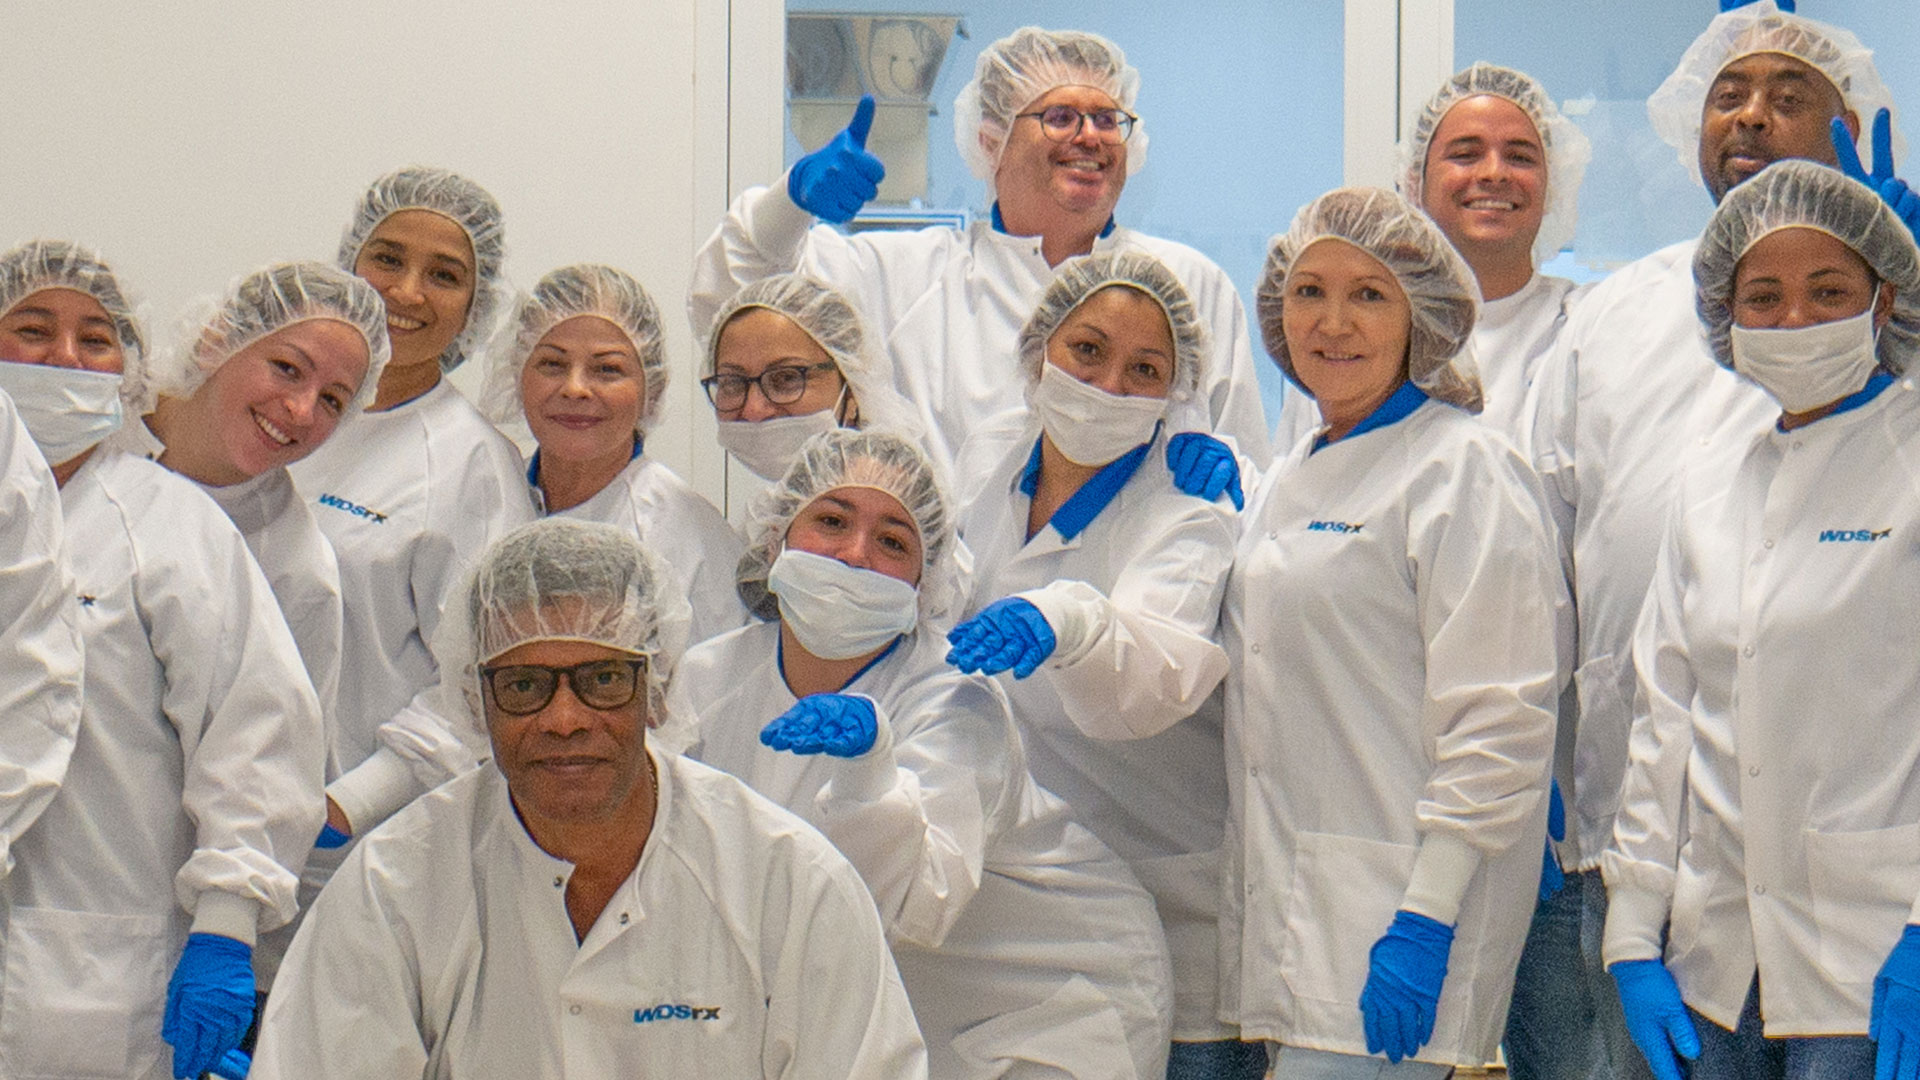 The production team at WDSrx manages packaging and labeling projects.